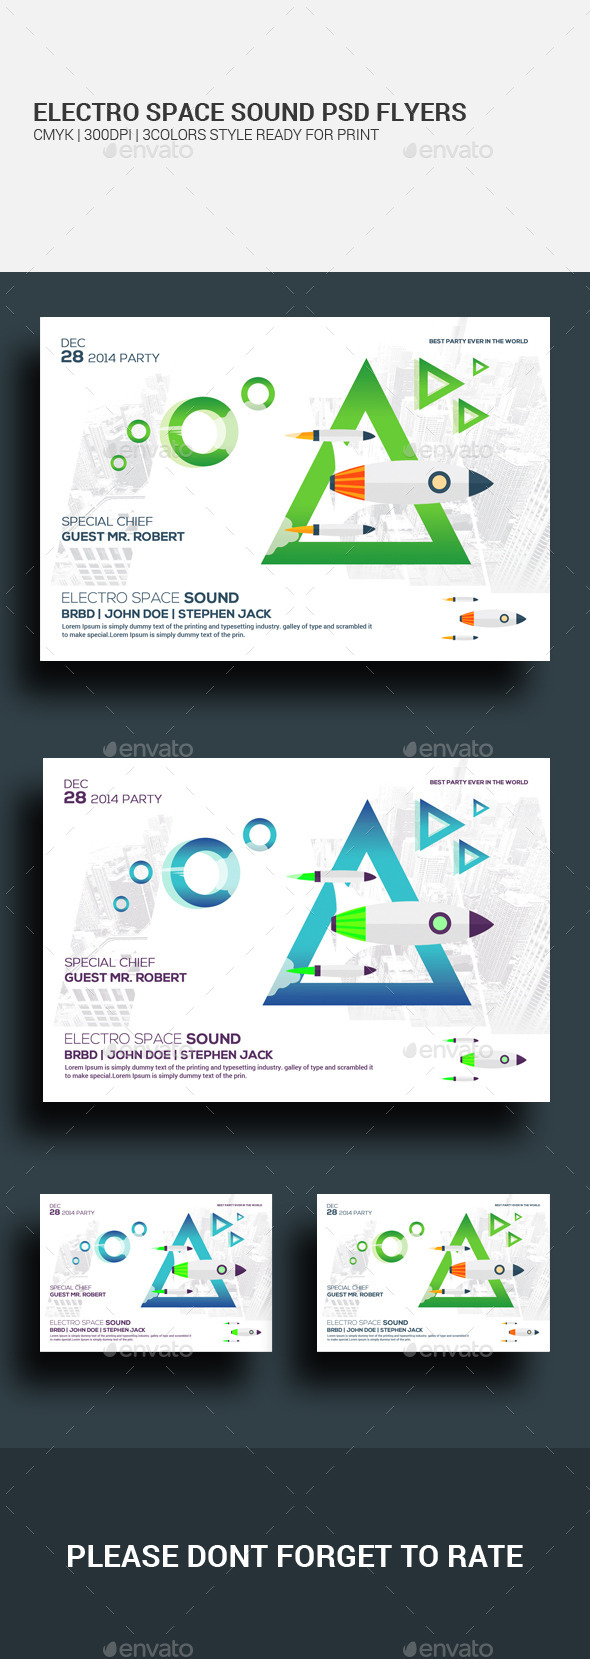 Space Sound Flyer Psd Template - Clubs & Parties Events